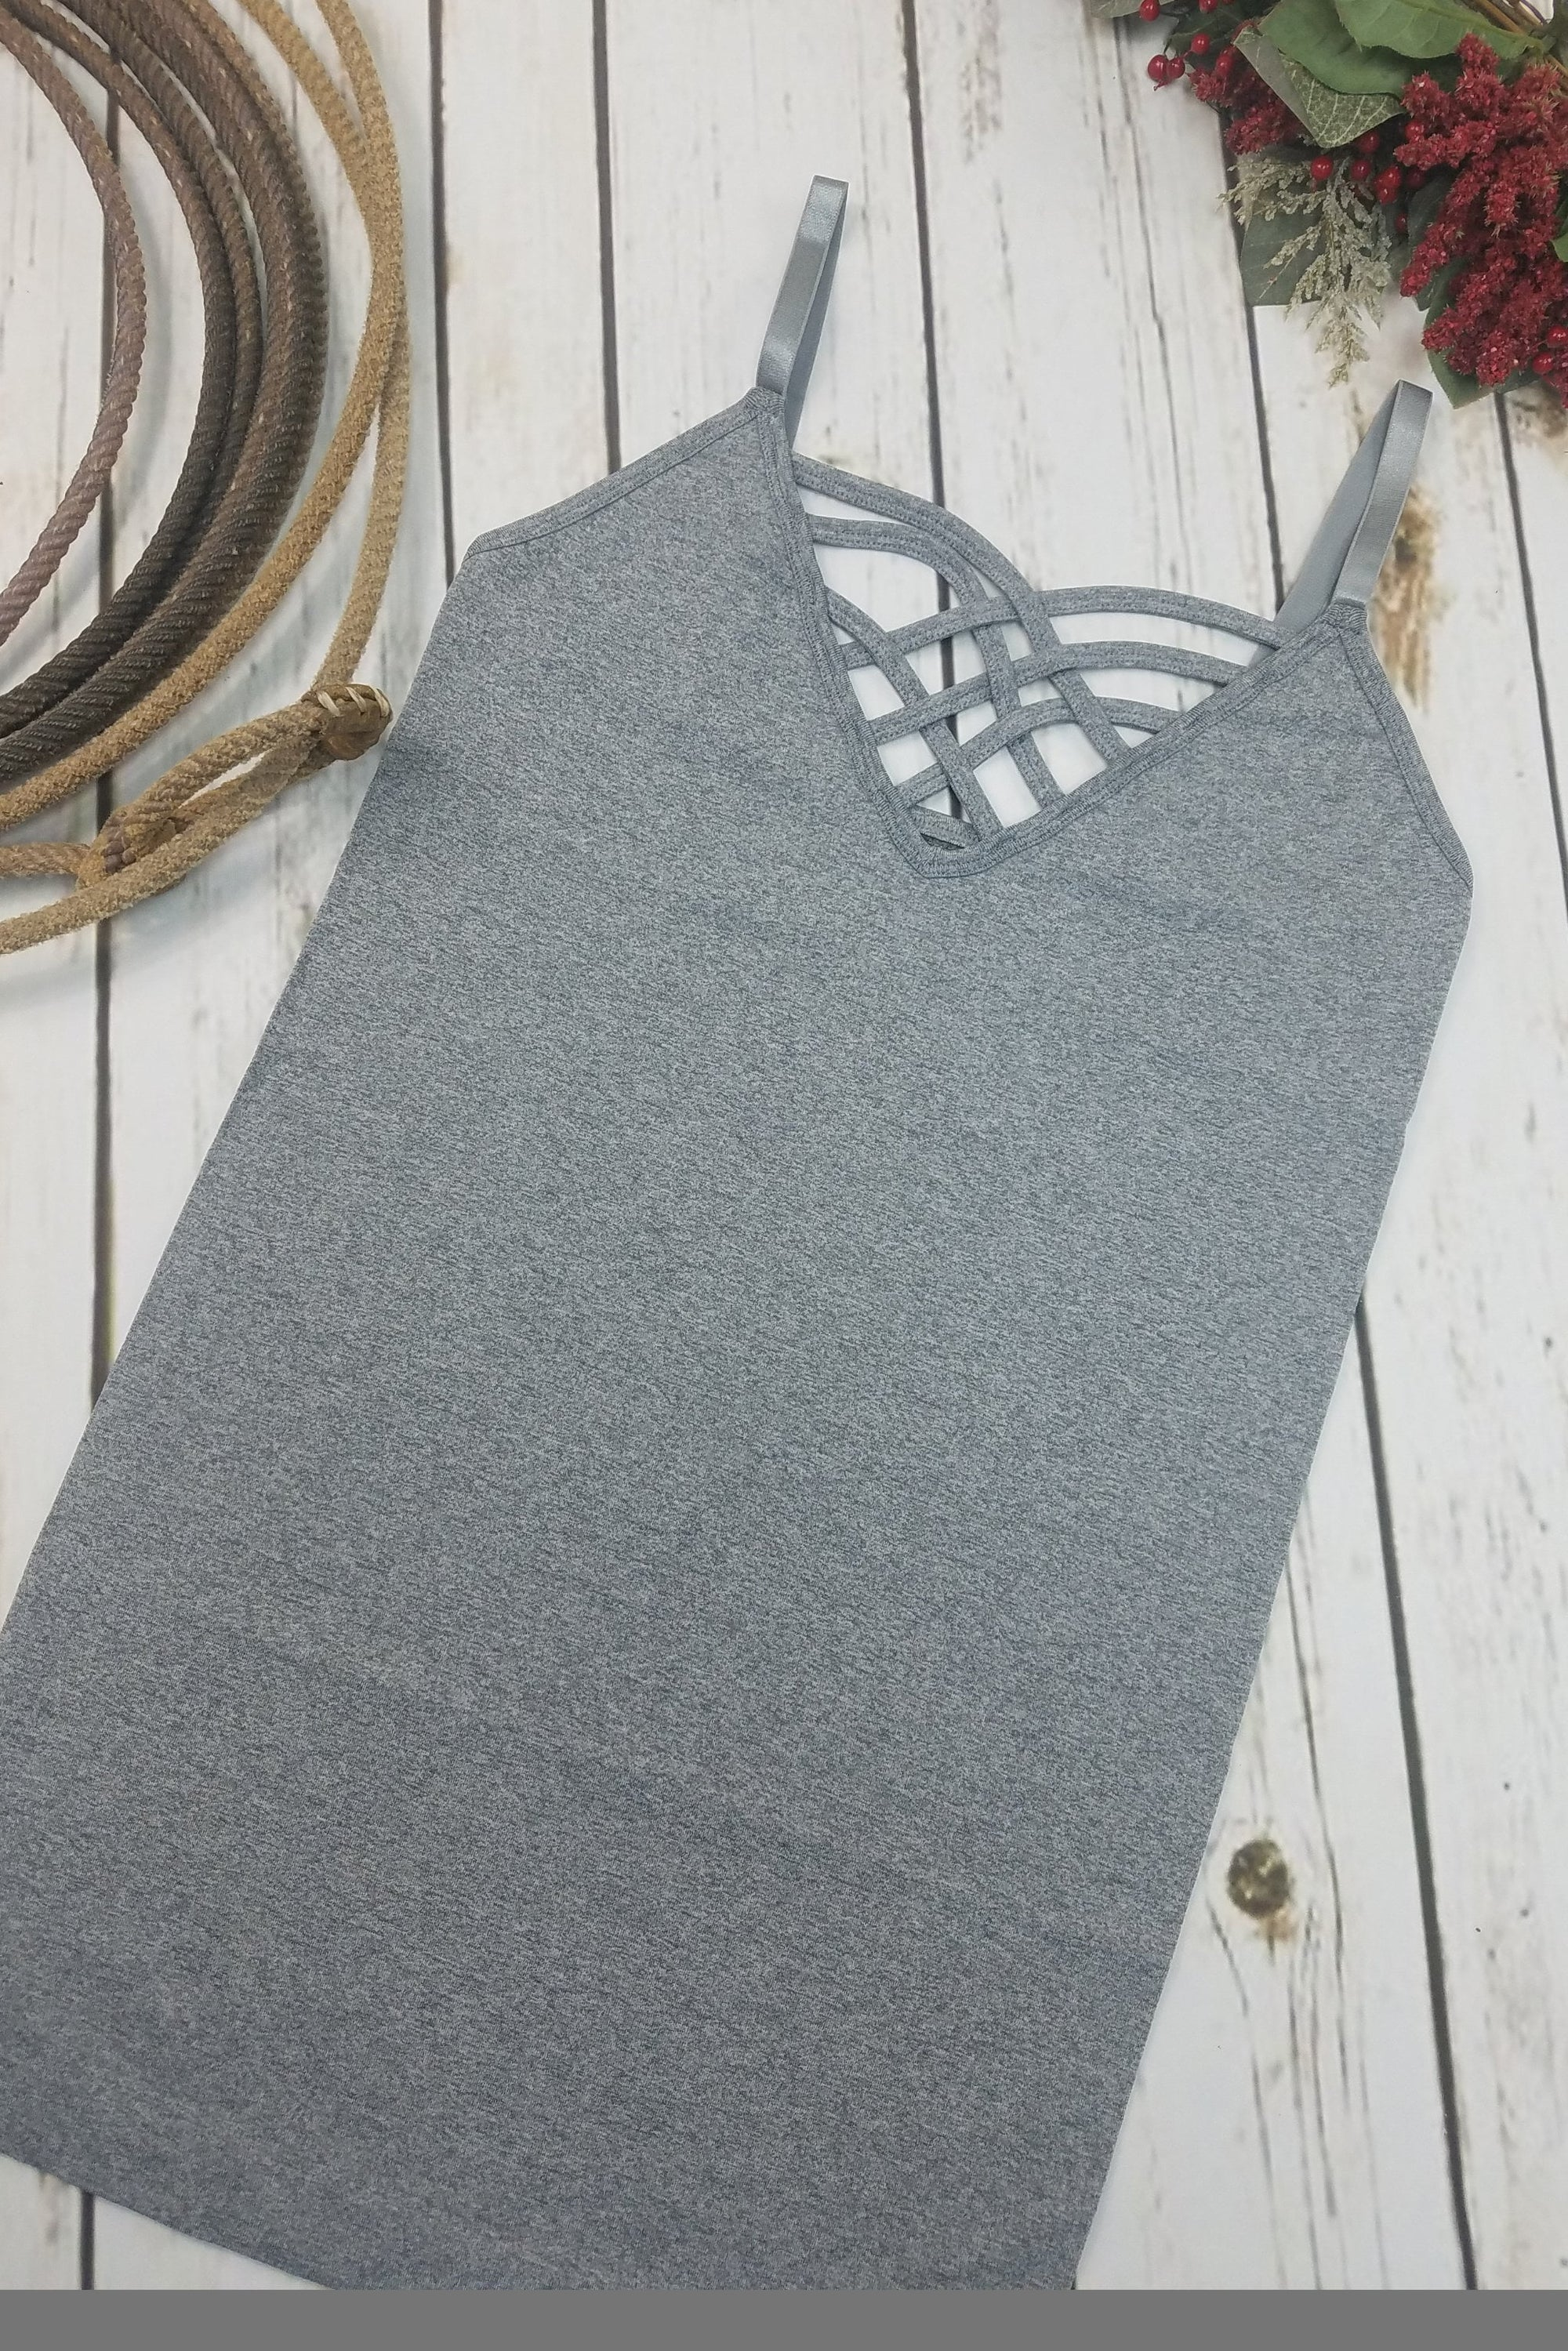 Thelma Heather Gray V-Neck Criss-Cross Cami (Item #51)